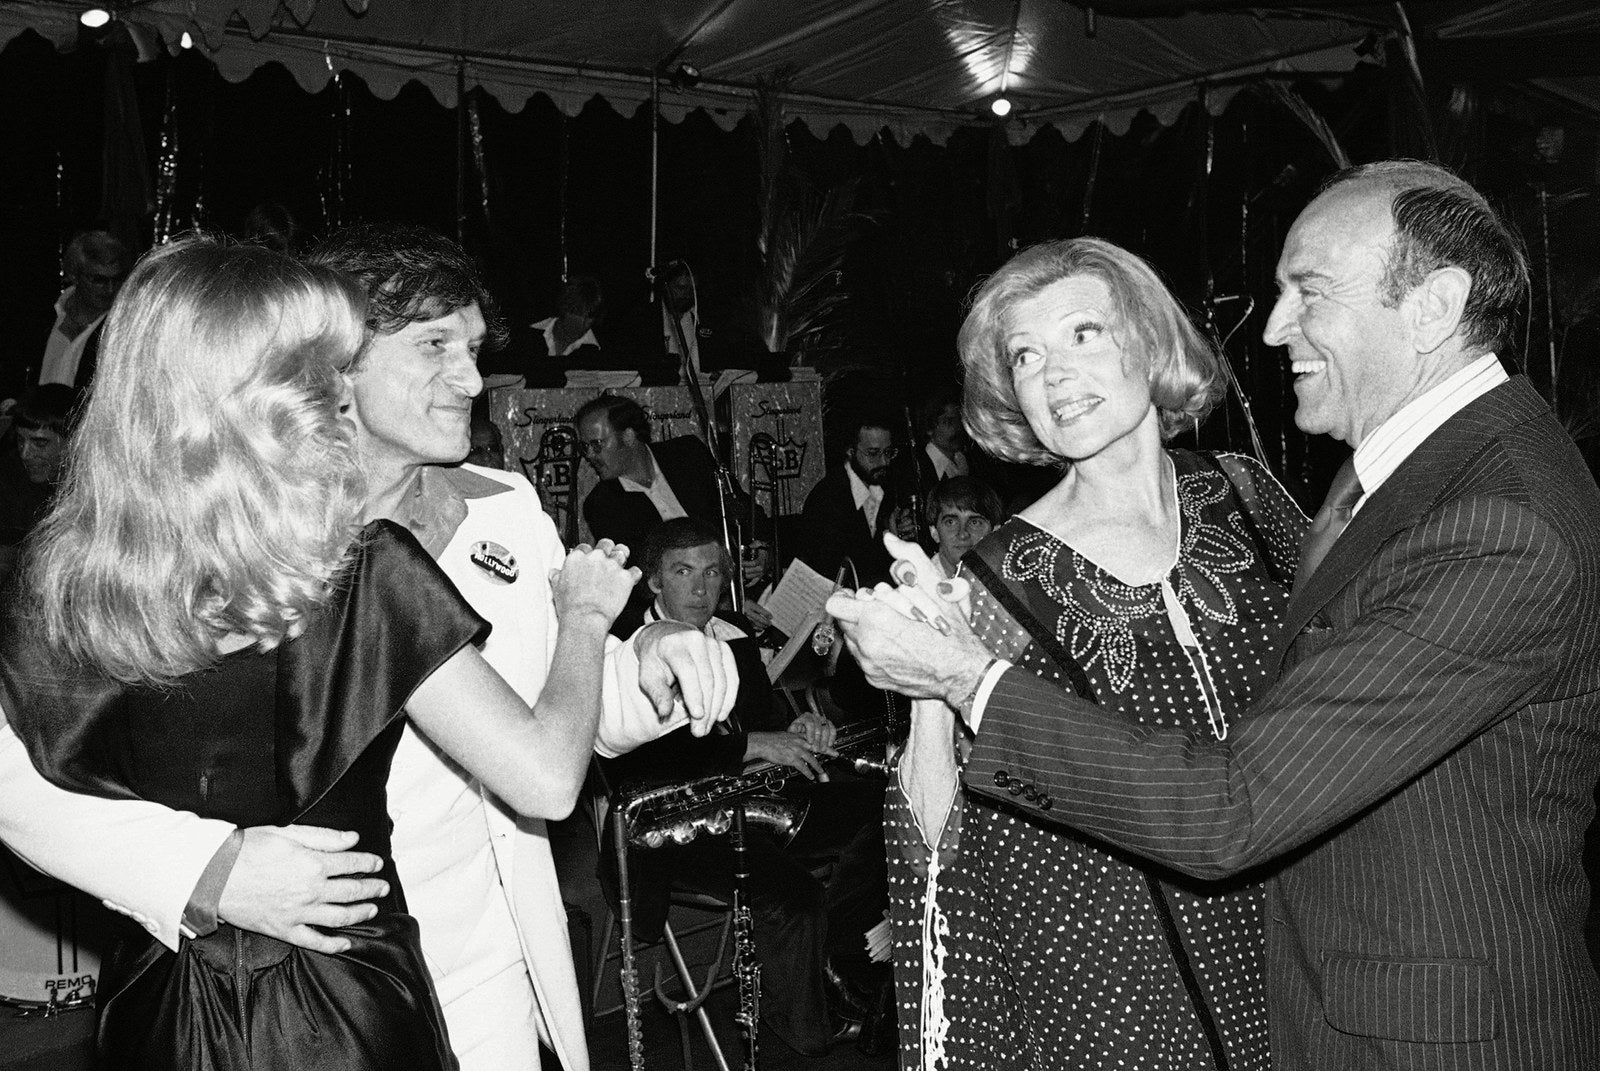 Hefner dances with playmate Sandra Theodore, alongside actress Rita Hayworth and her former choreographer Hermes Pan, during a fundraising party to save the Hollywood sign in Los Angeles in 1978.